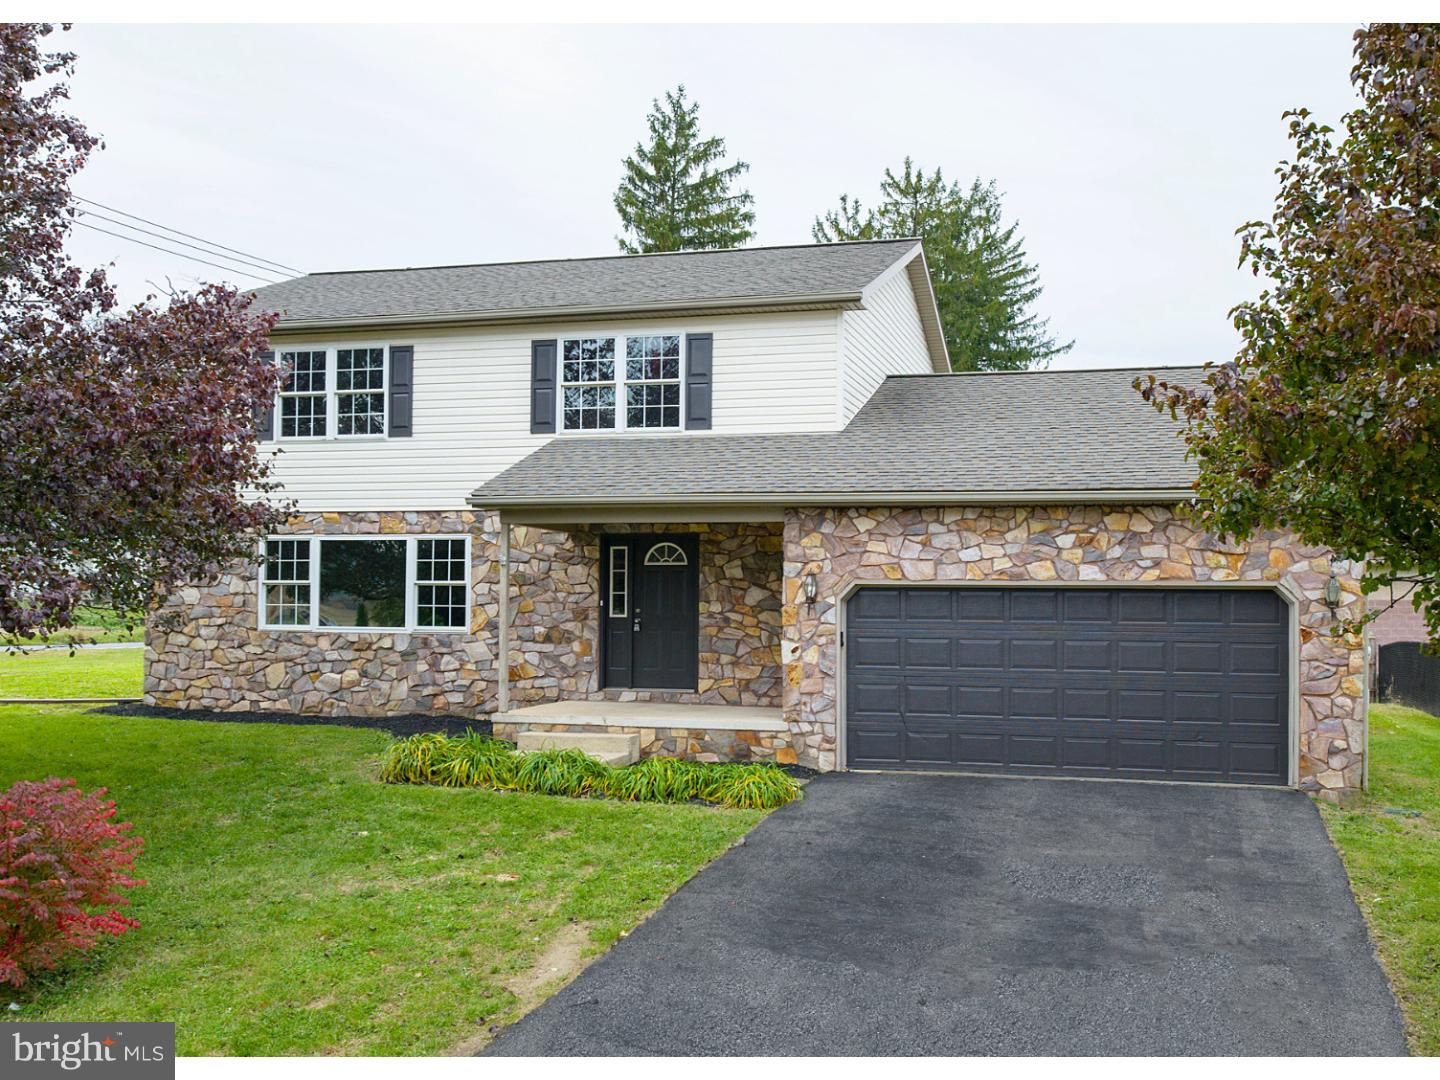 2 CARRIAGE DRIVE, WERNERSVILLE, PA 19565